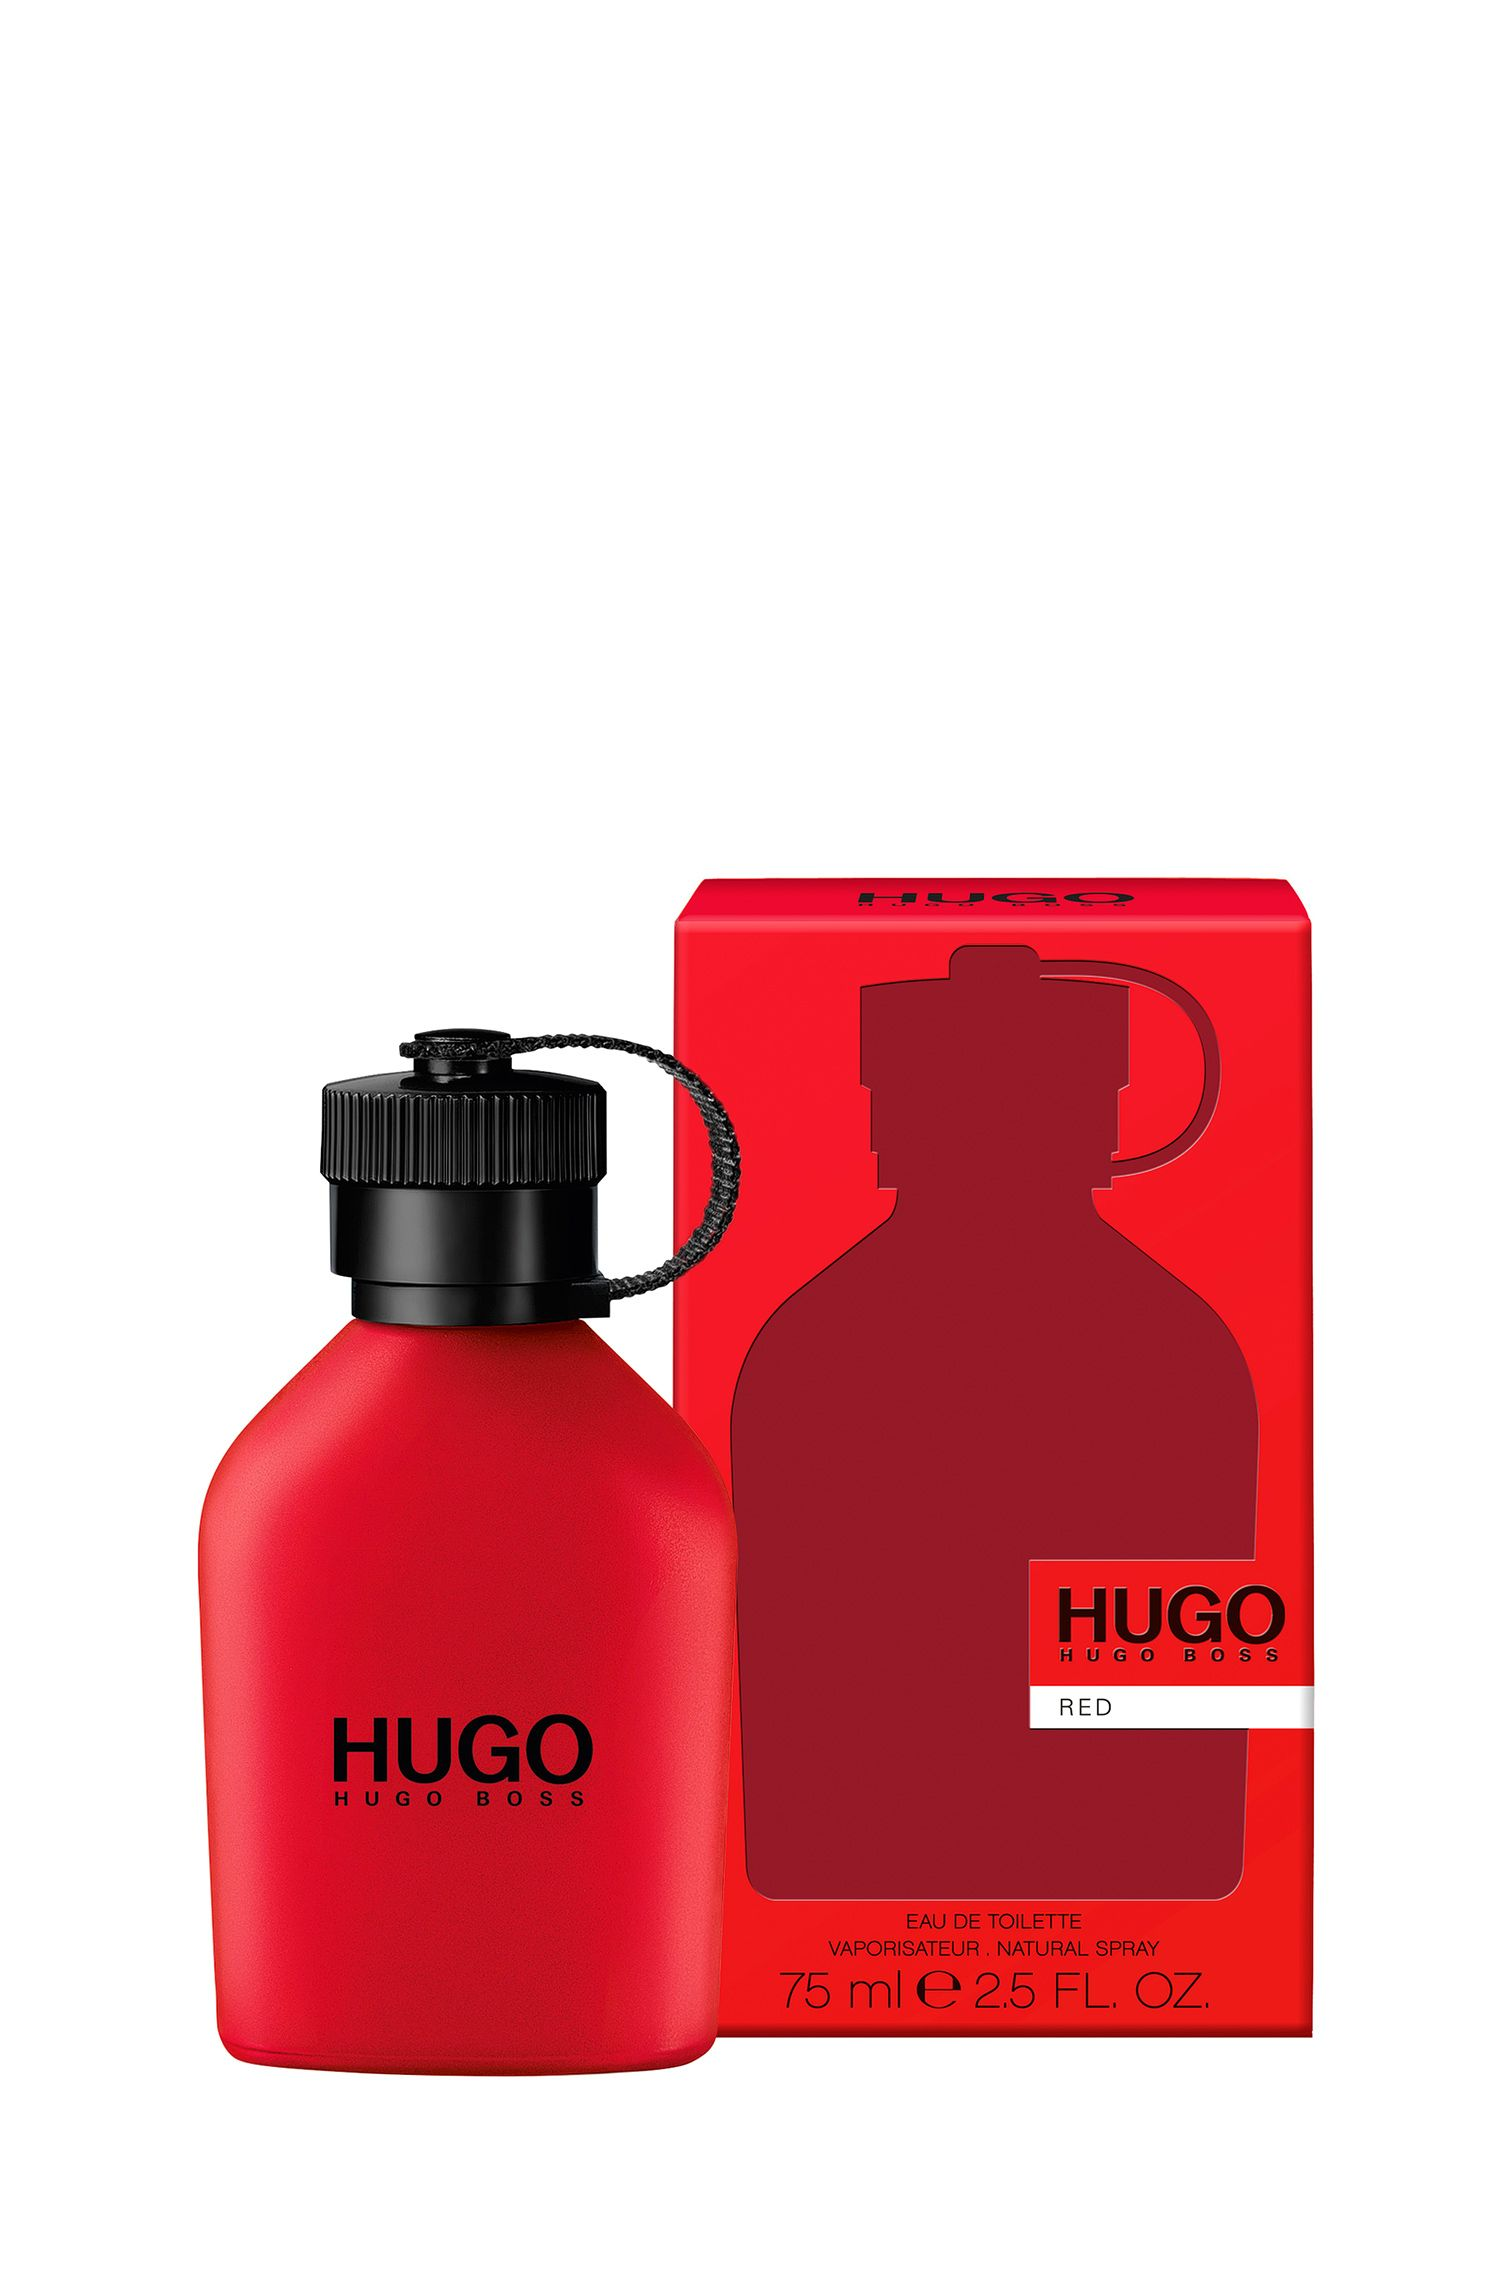 HUGO Red Eau de Toilette 75 ml